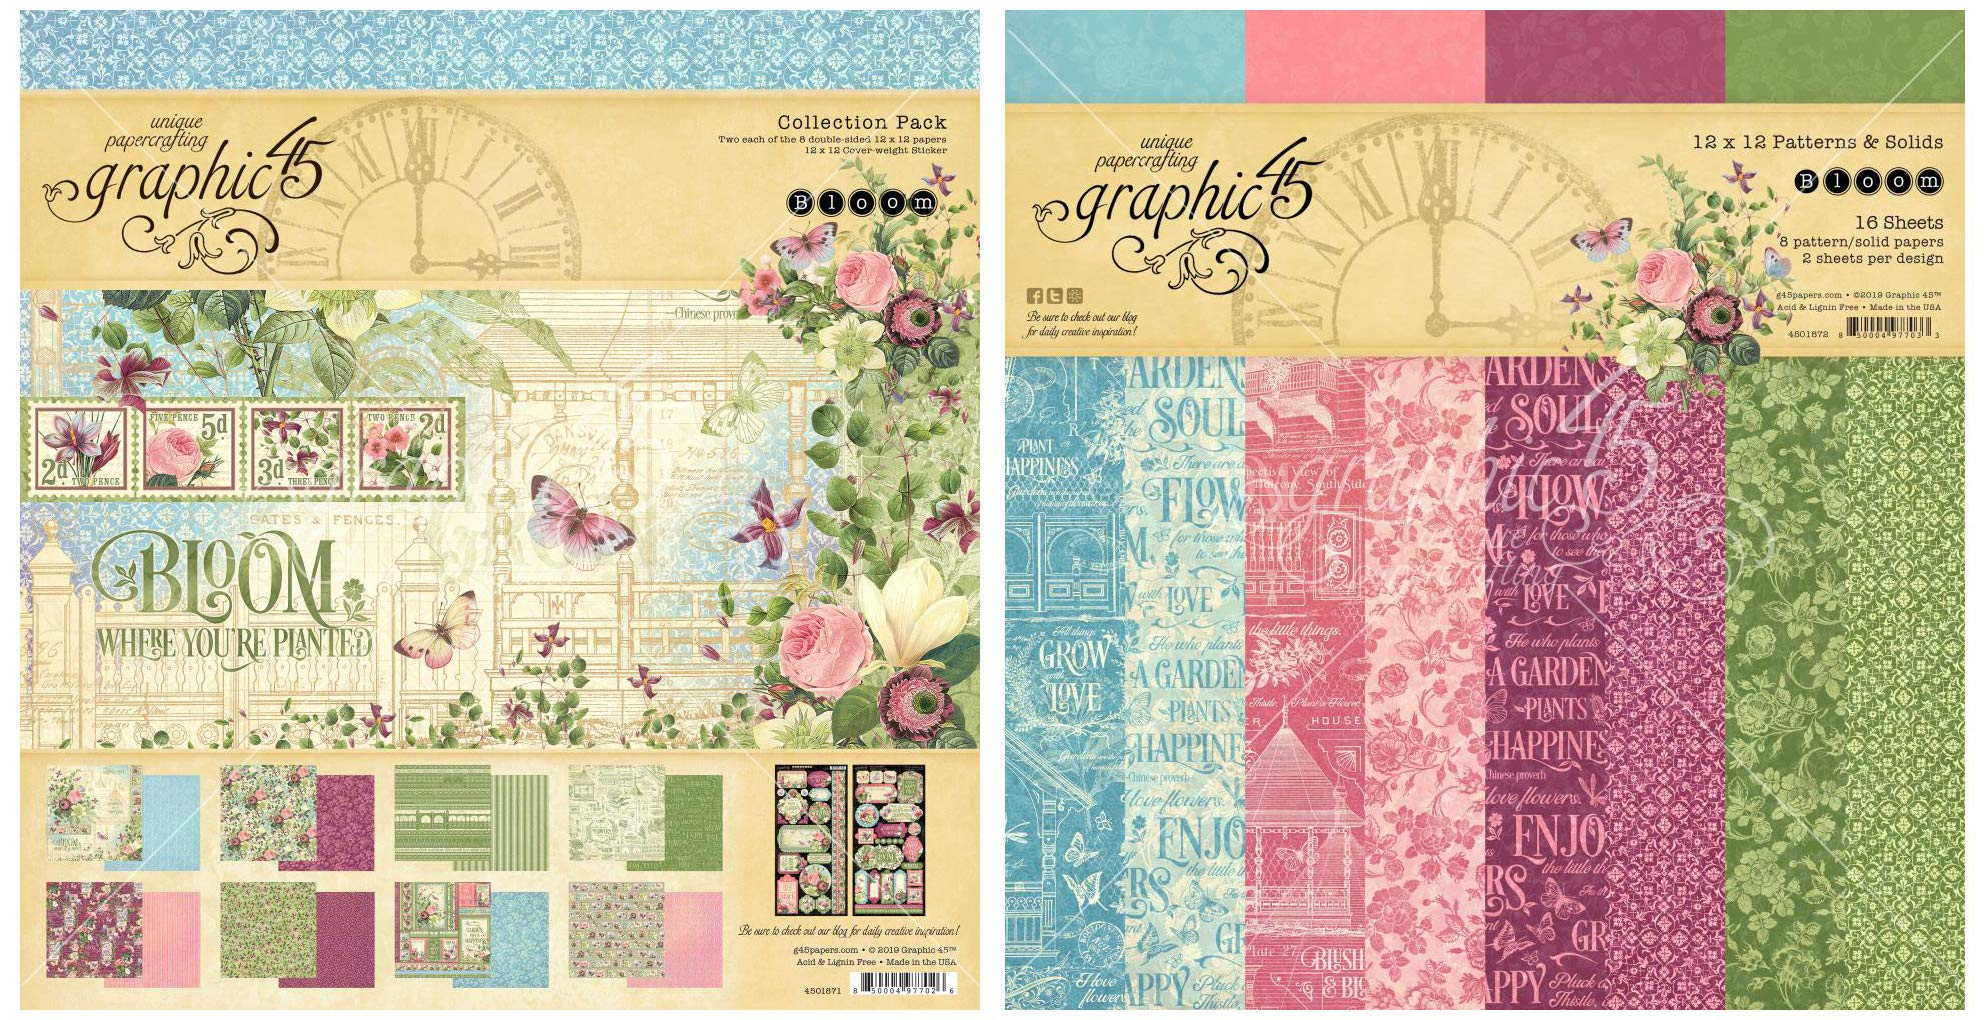 Graphic 45 - Bloom Collection Pack and Bloom Patterns & Solids Paper Pad - 12 x 12 Inch Decorative Papers - 2 Items